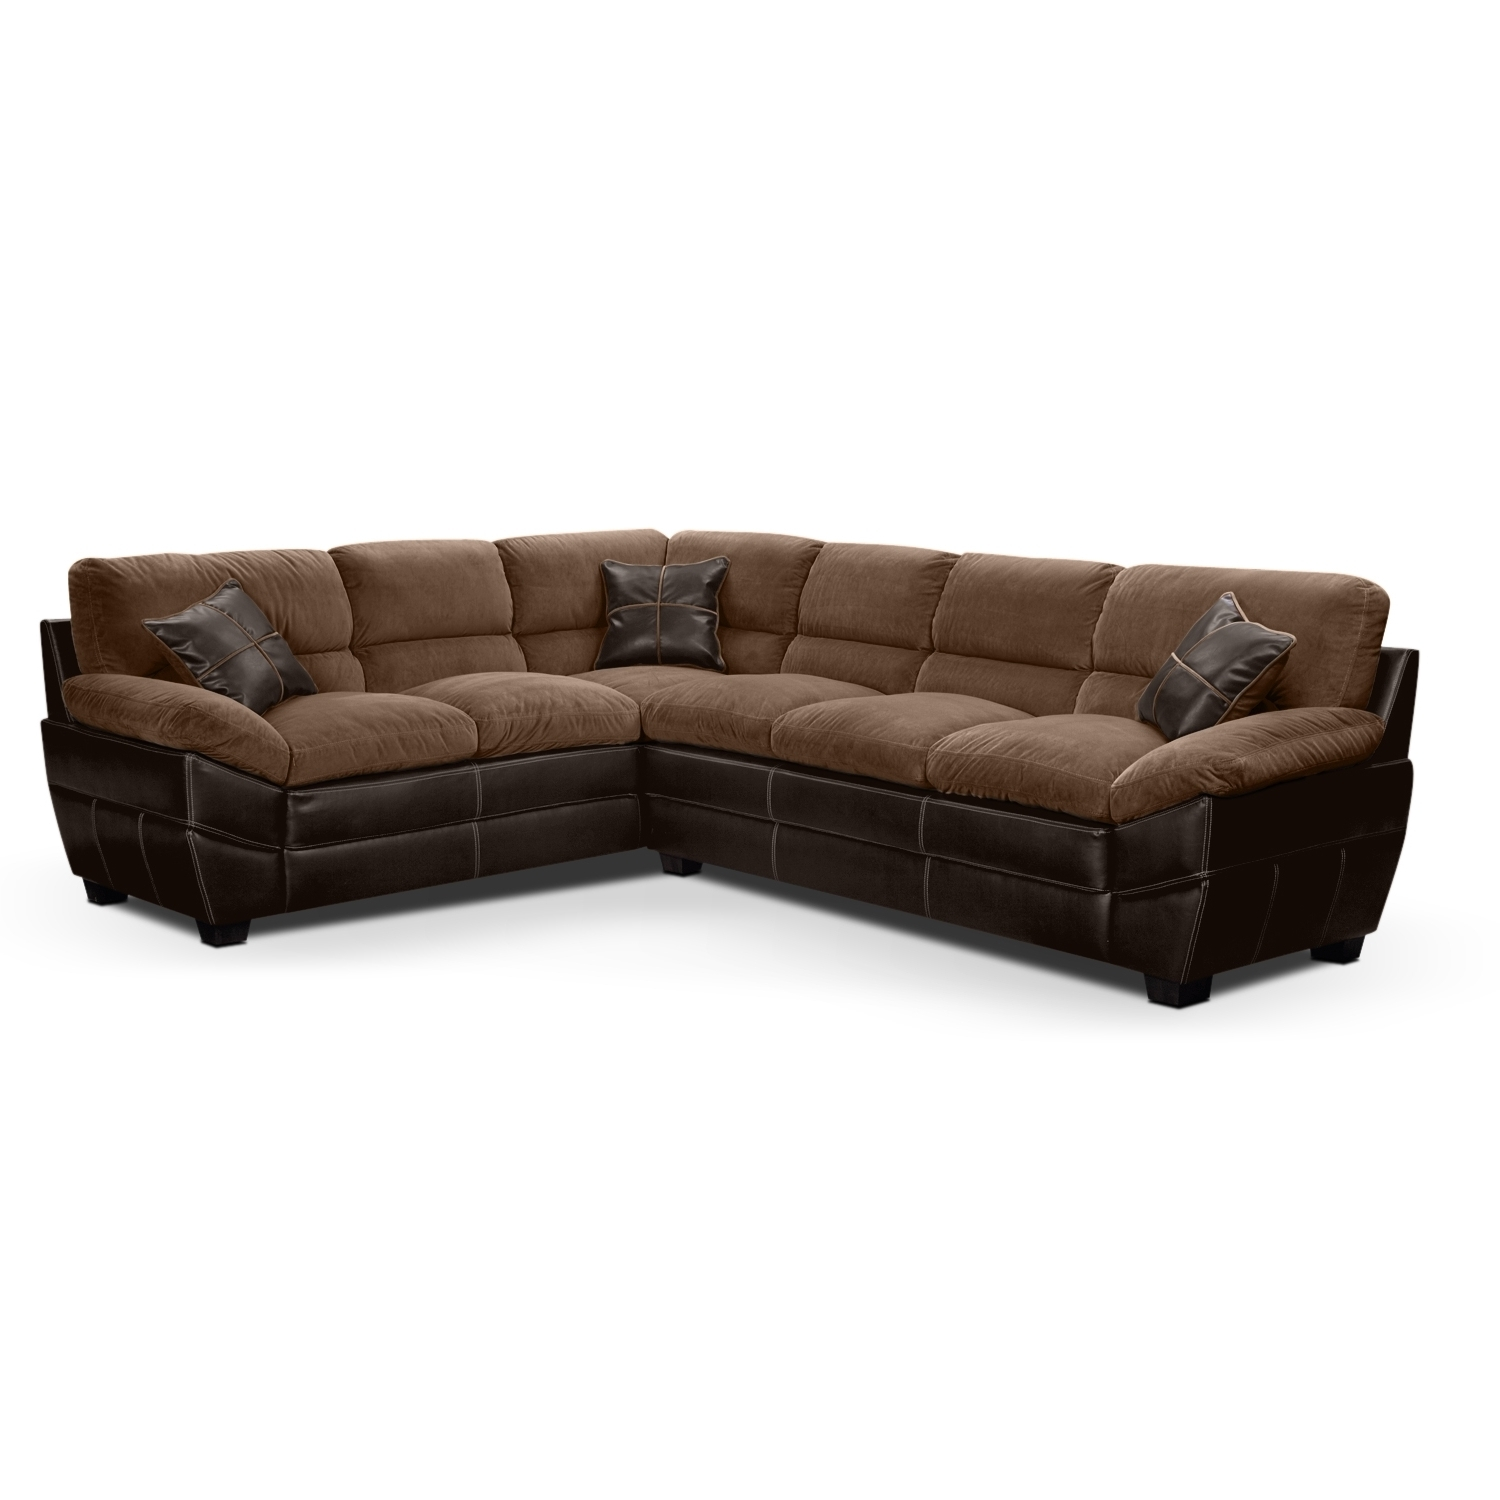 Value City Sectional Sofas with regard to Widely used Value City Sectional Sofa With Regard To Best Home Furniture